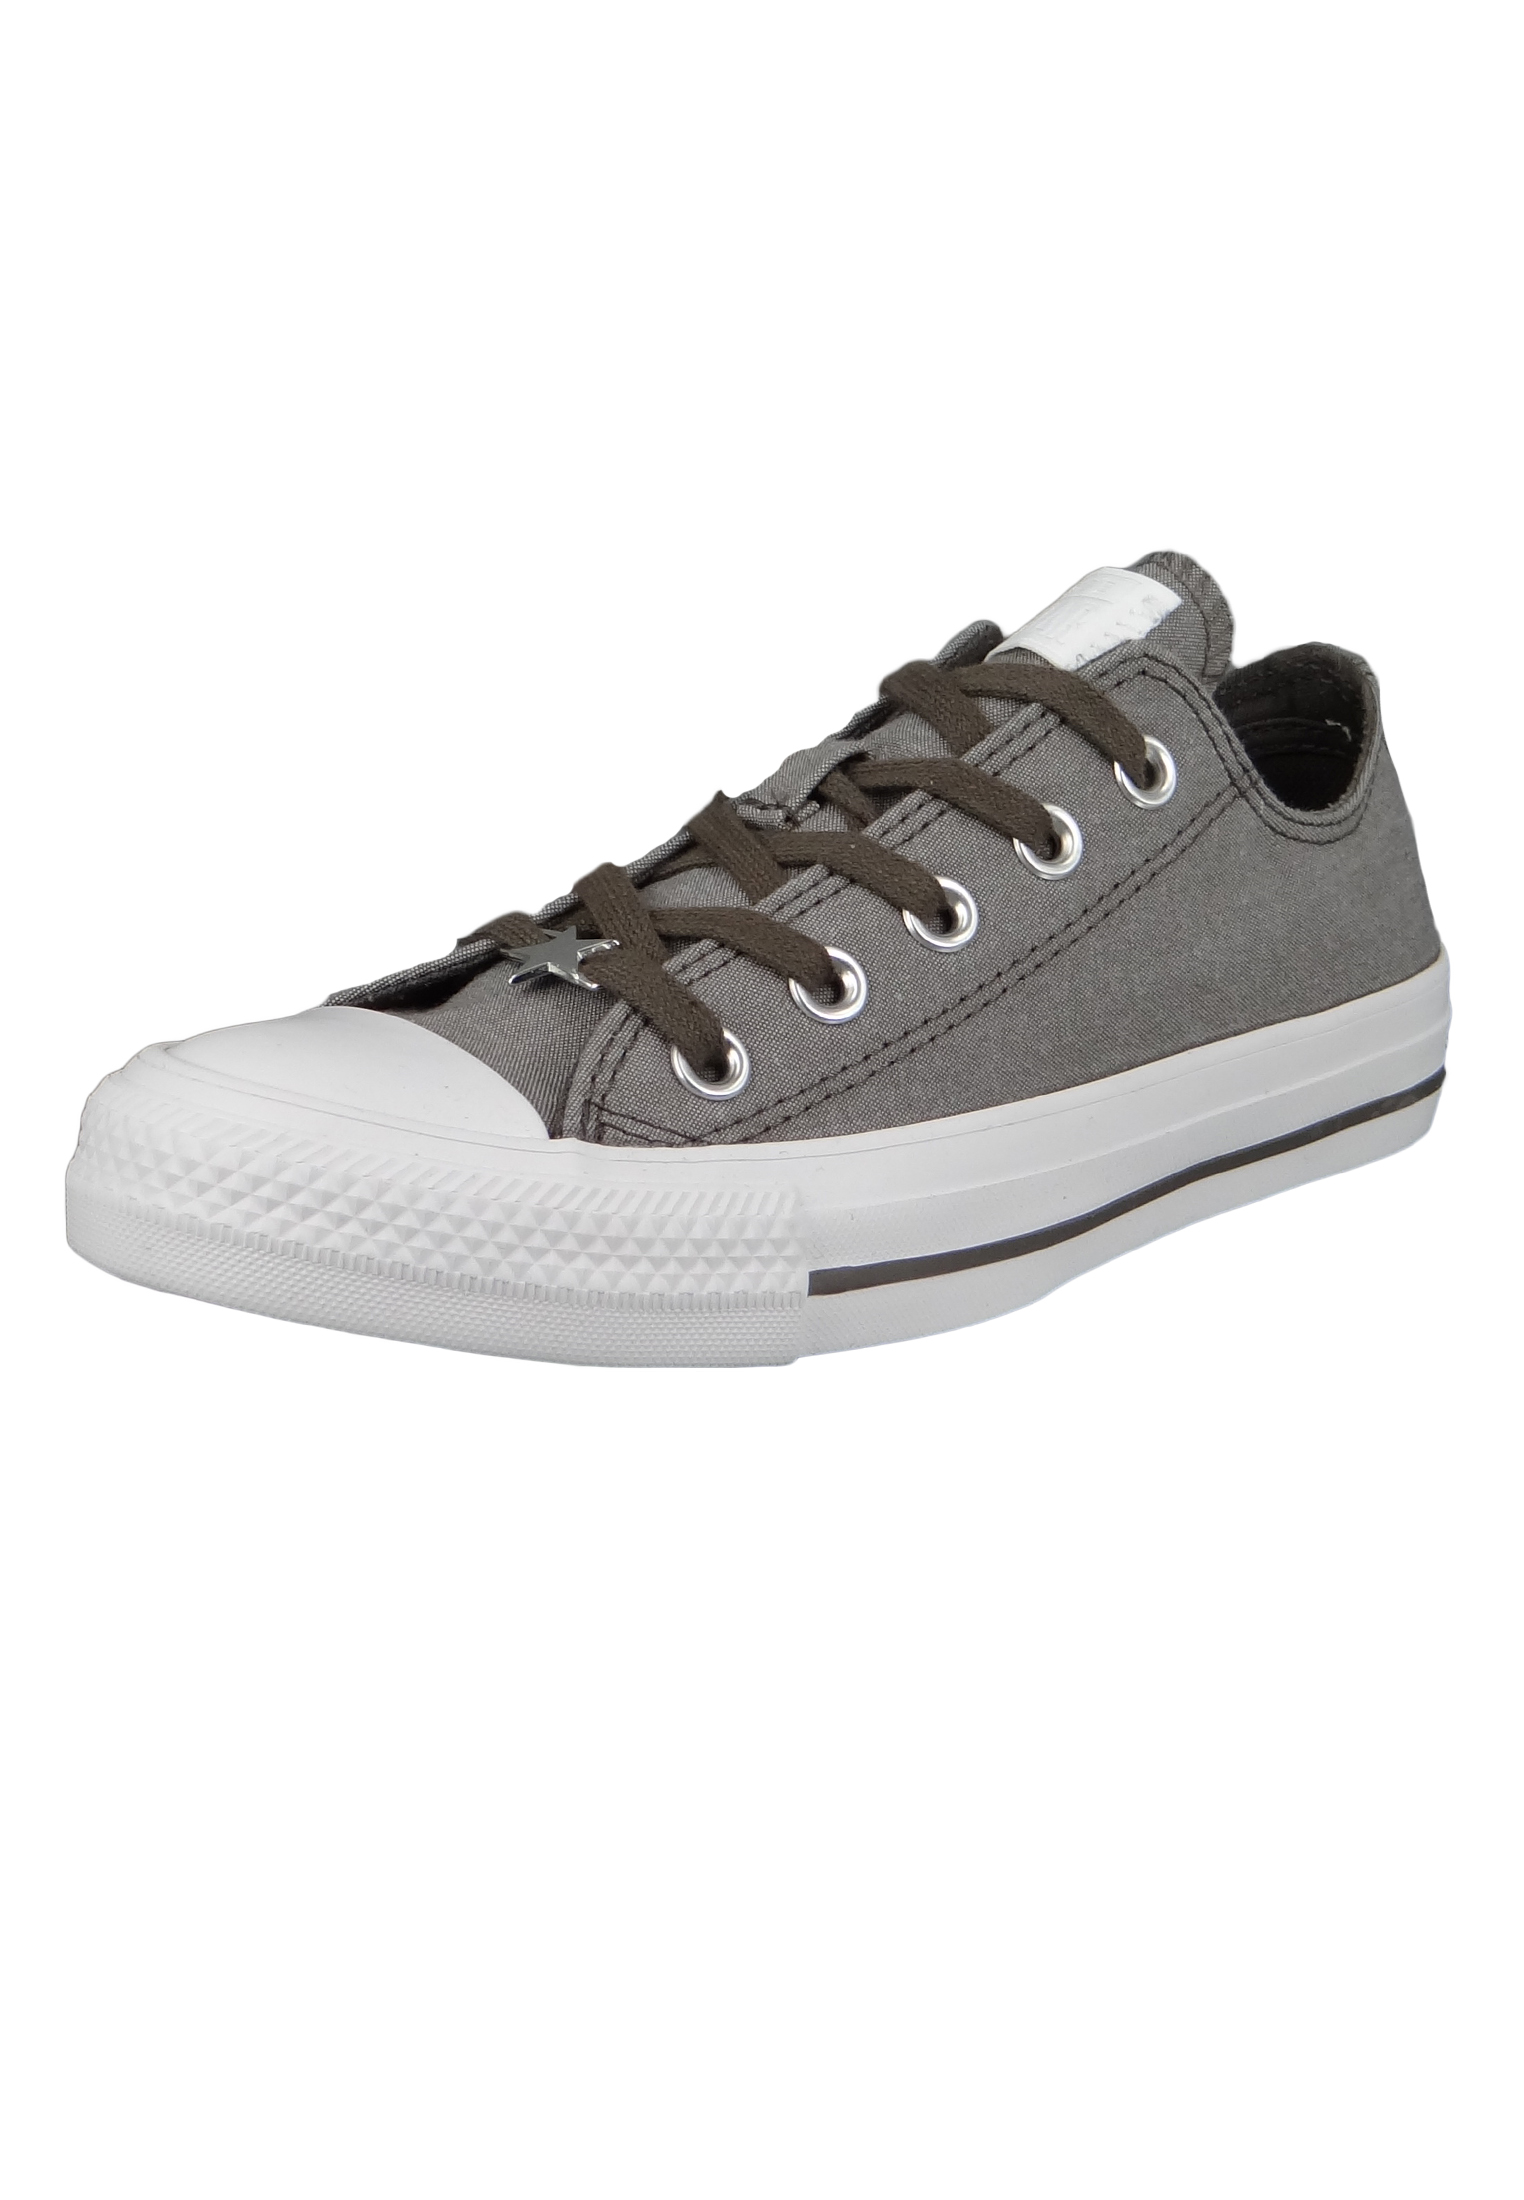 huge selection of 98ecf 5fca5 Converse Chucks Grau 564422C Chuck Taylor All Star - OX Ridgerock White